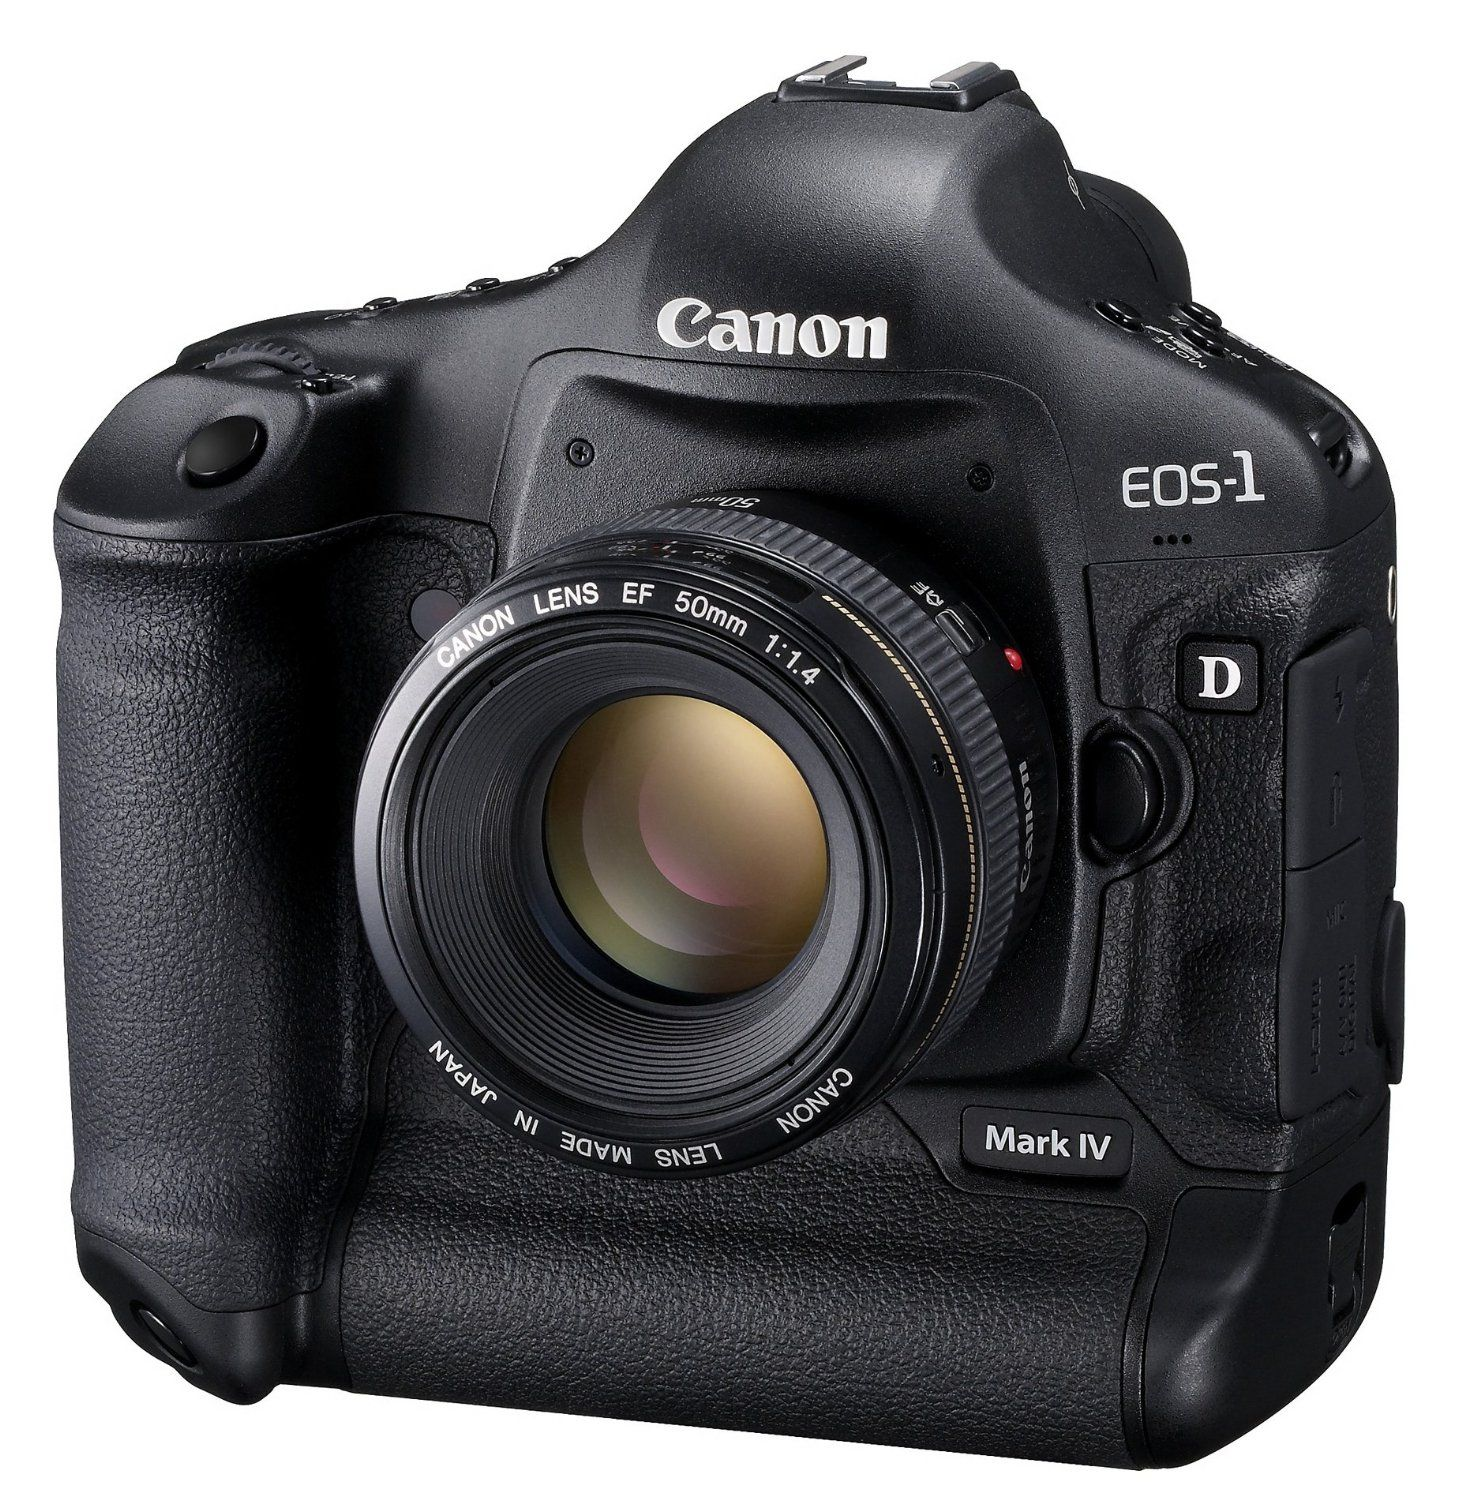 Amazon.com : Canon EOS 1D Mark IV 16.1 MP CMOS Digital SLR Camera with 3-Inch LCD and 1080p HD Video (Body Only) : Camera & Photo